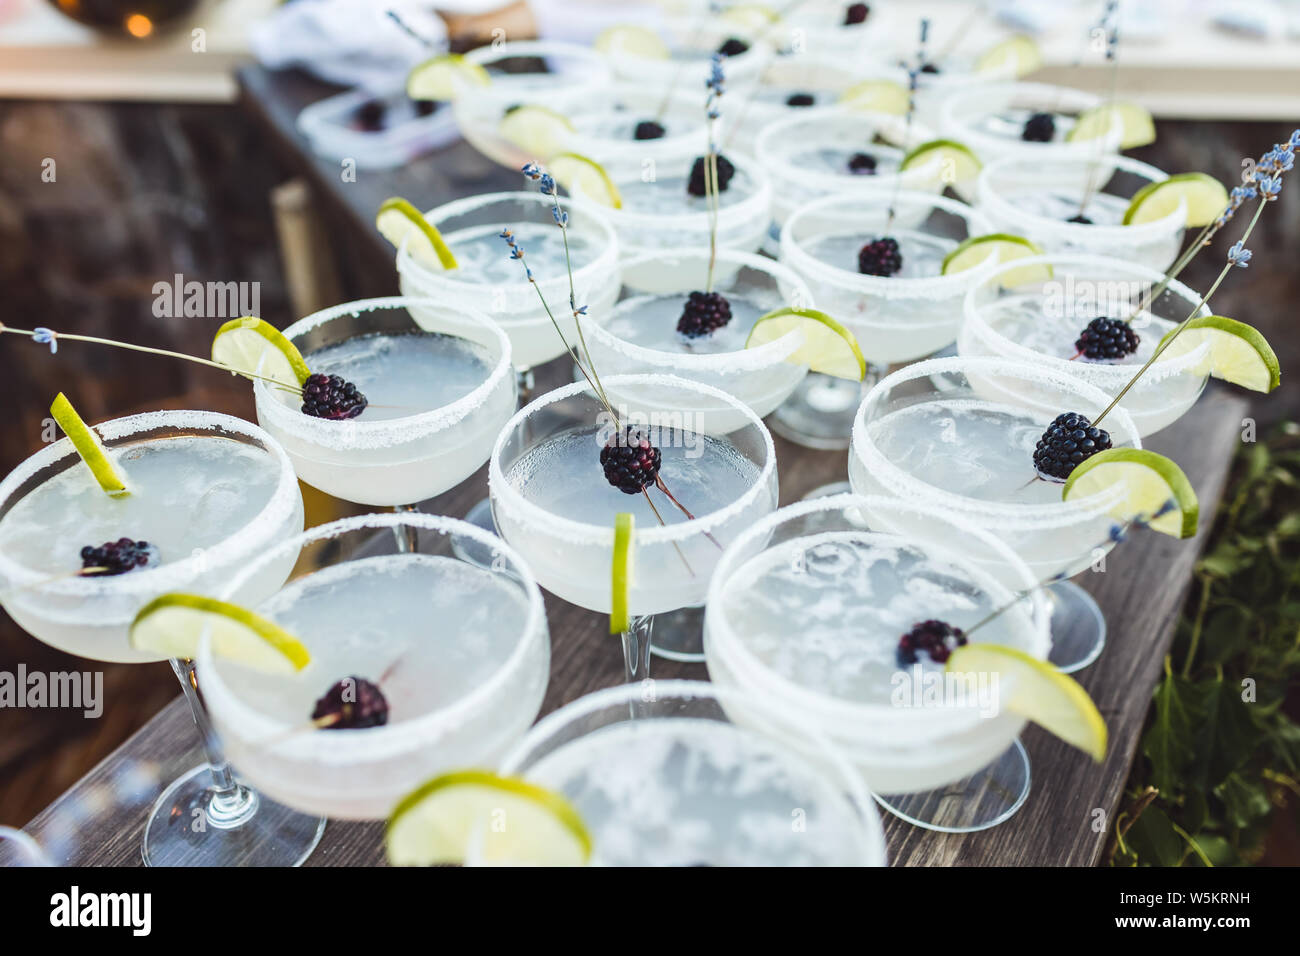 Set Of Margarita Cocktails With Slice Of Lime And Blackberry On Top On Bar Counter Evening Patry Wedding Reception Stock Photo Alamy